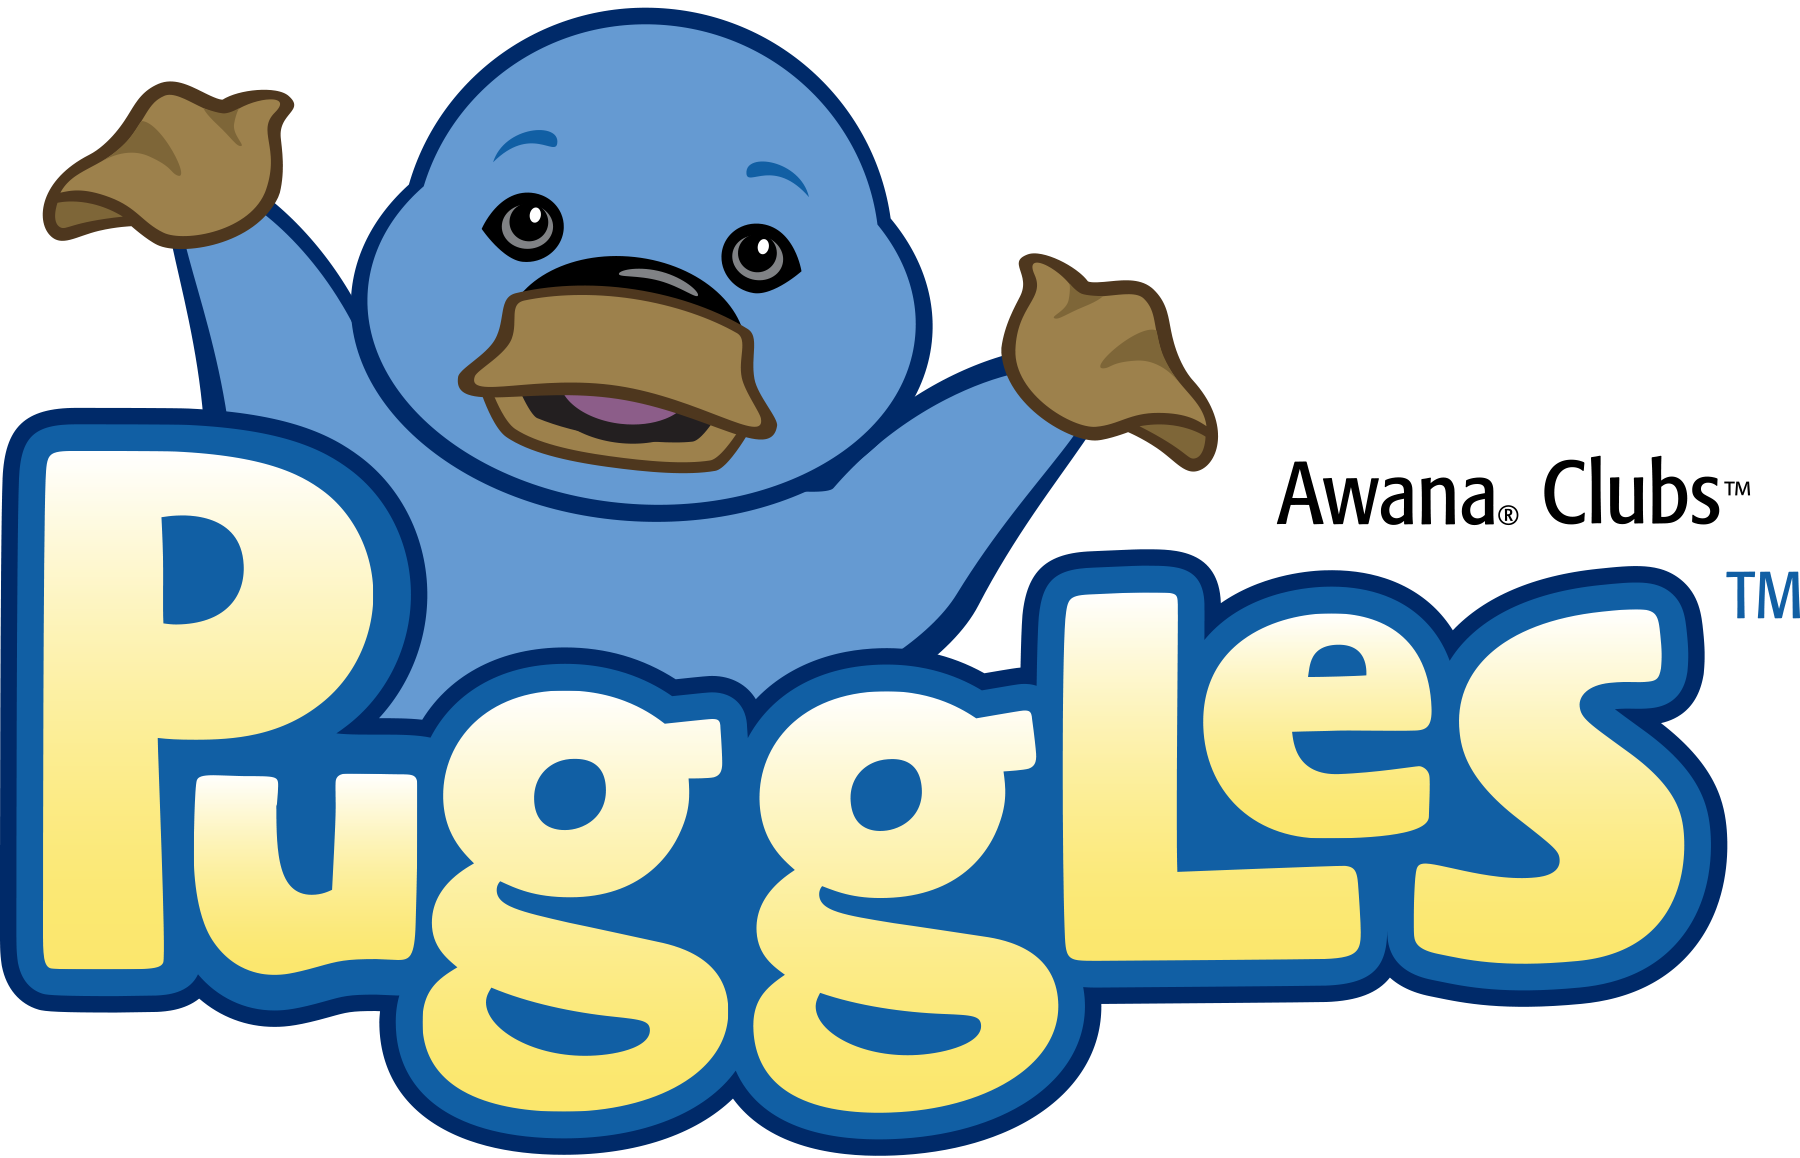 Puggles enrollment is limited to children of our Awana Clubs volunteers and those who are attending an ongoing Wednesday night activity at Forest Park. To enroll a child in Puggles, their parents should be Forest Park members, attendees, working in our Awana Clubs ministry, or attending an ongoing Wednesday night activity at Forest Park. There is no registration fee for Puggles.